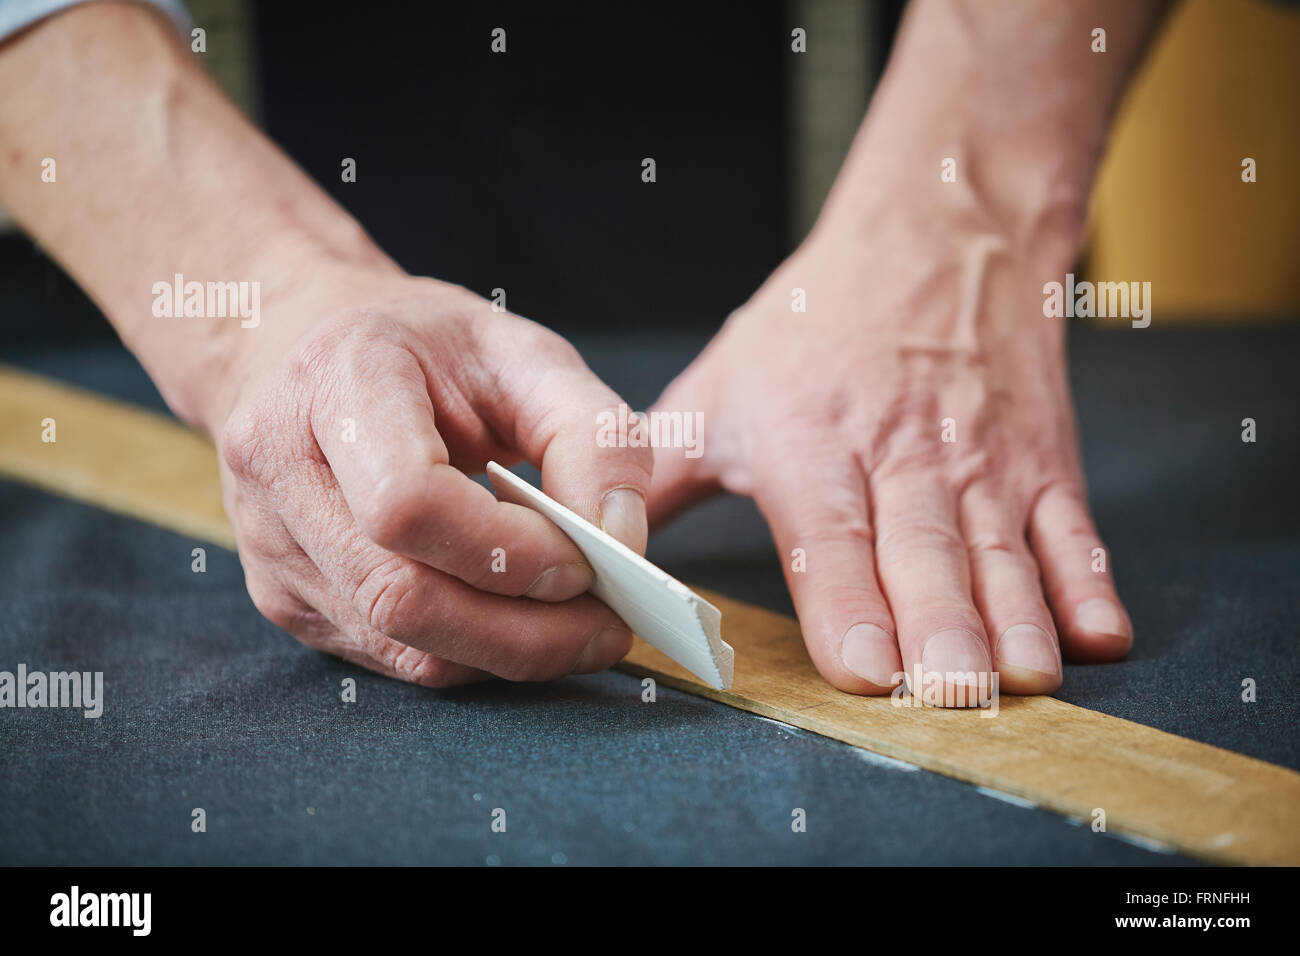 Drawing dotted line - Stock Image